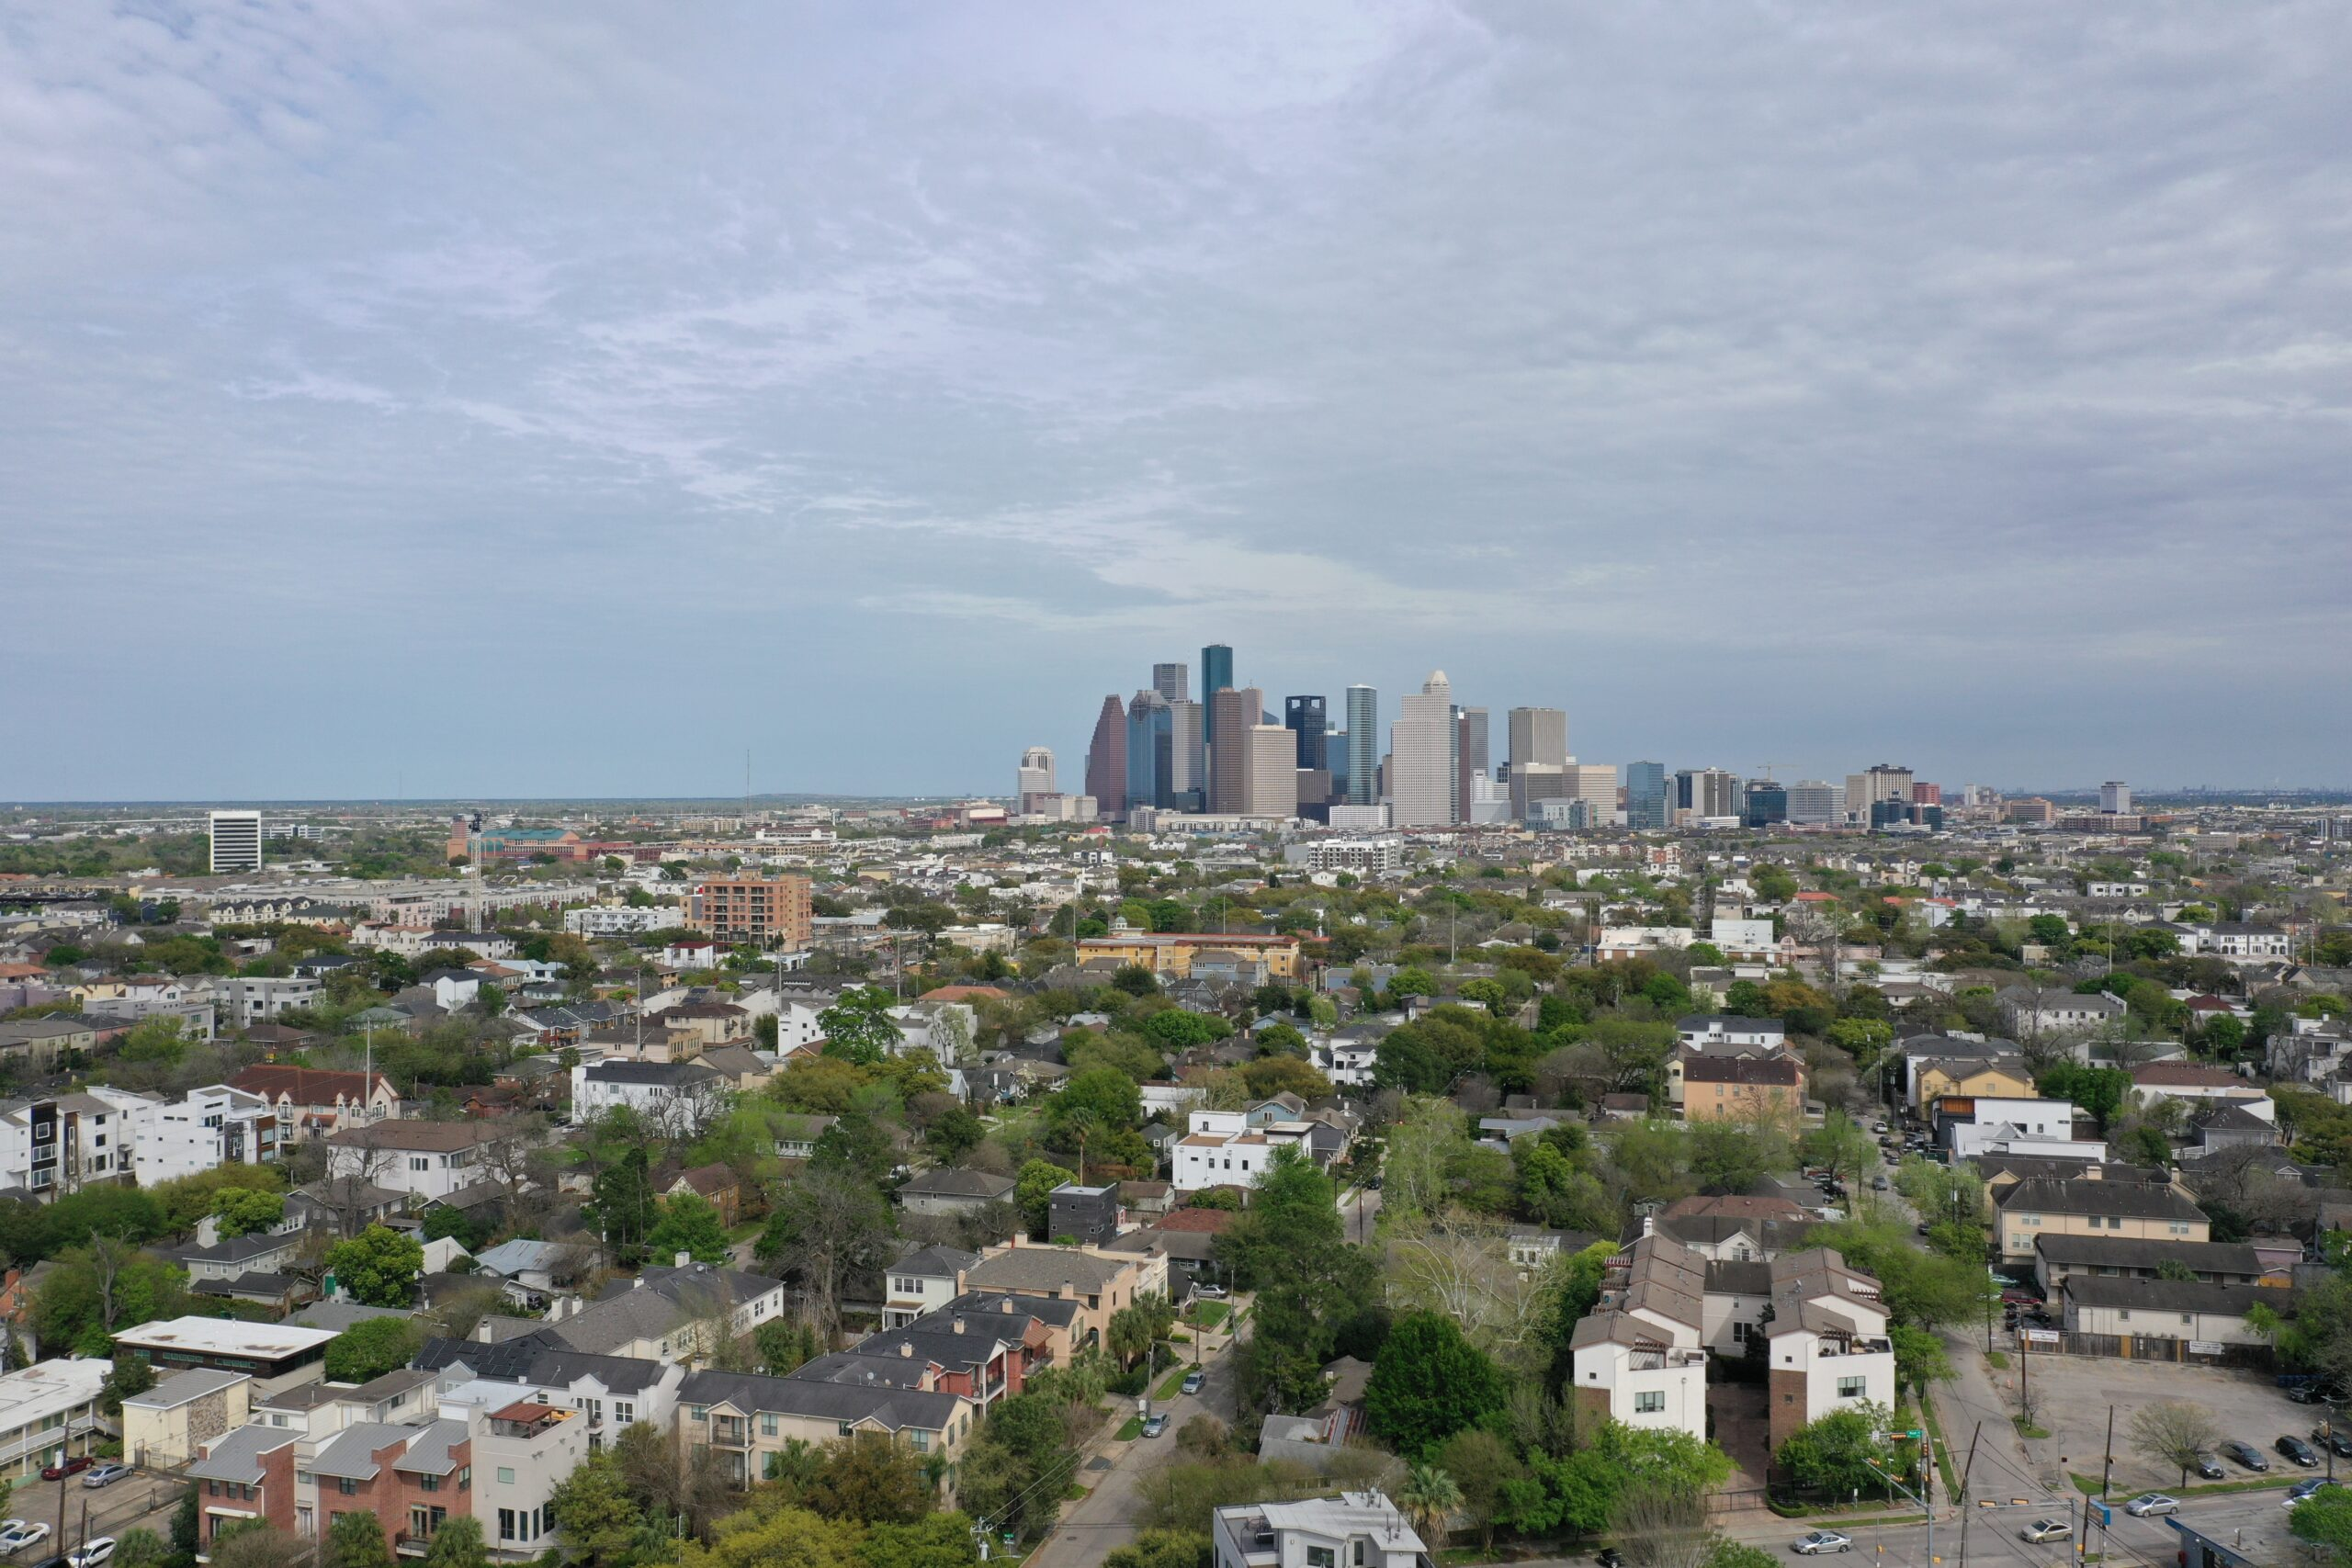 City of Houston Skyline